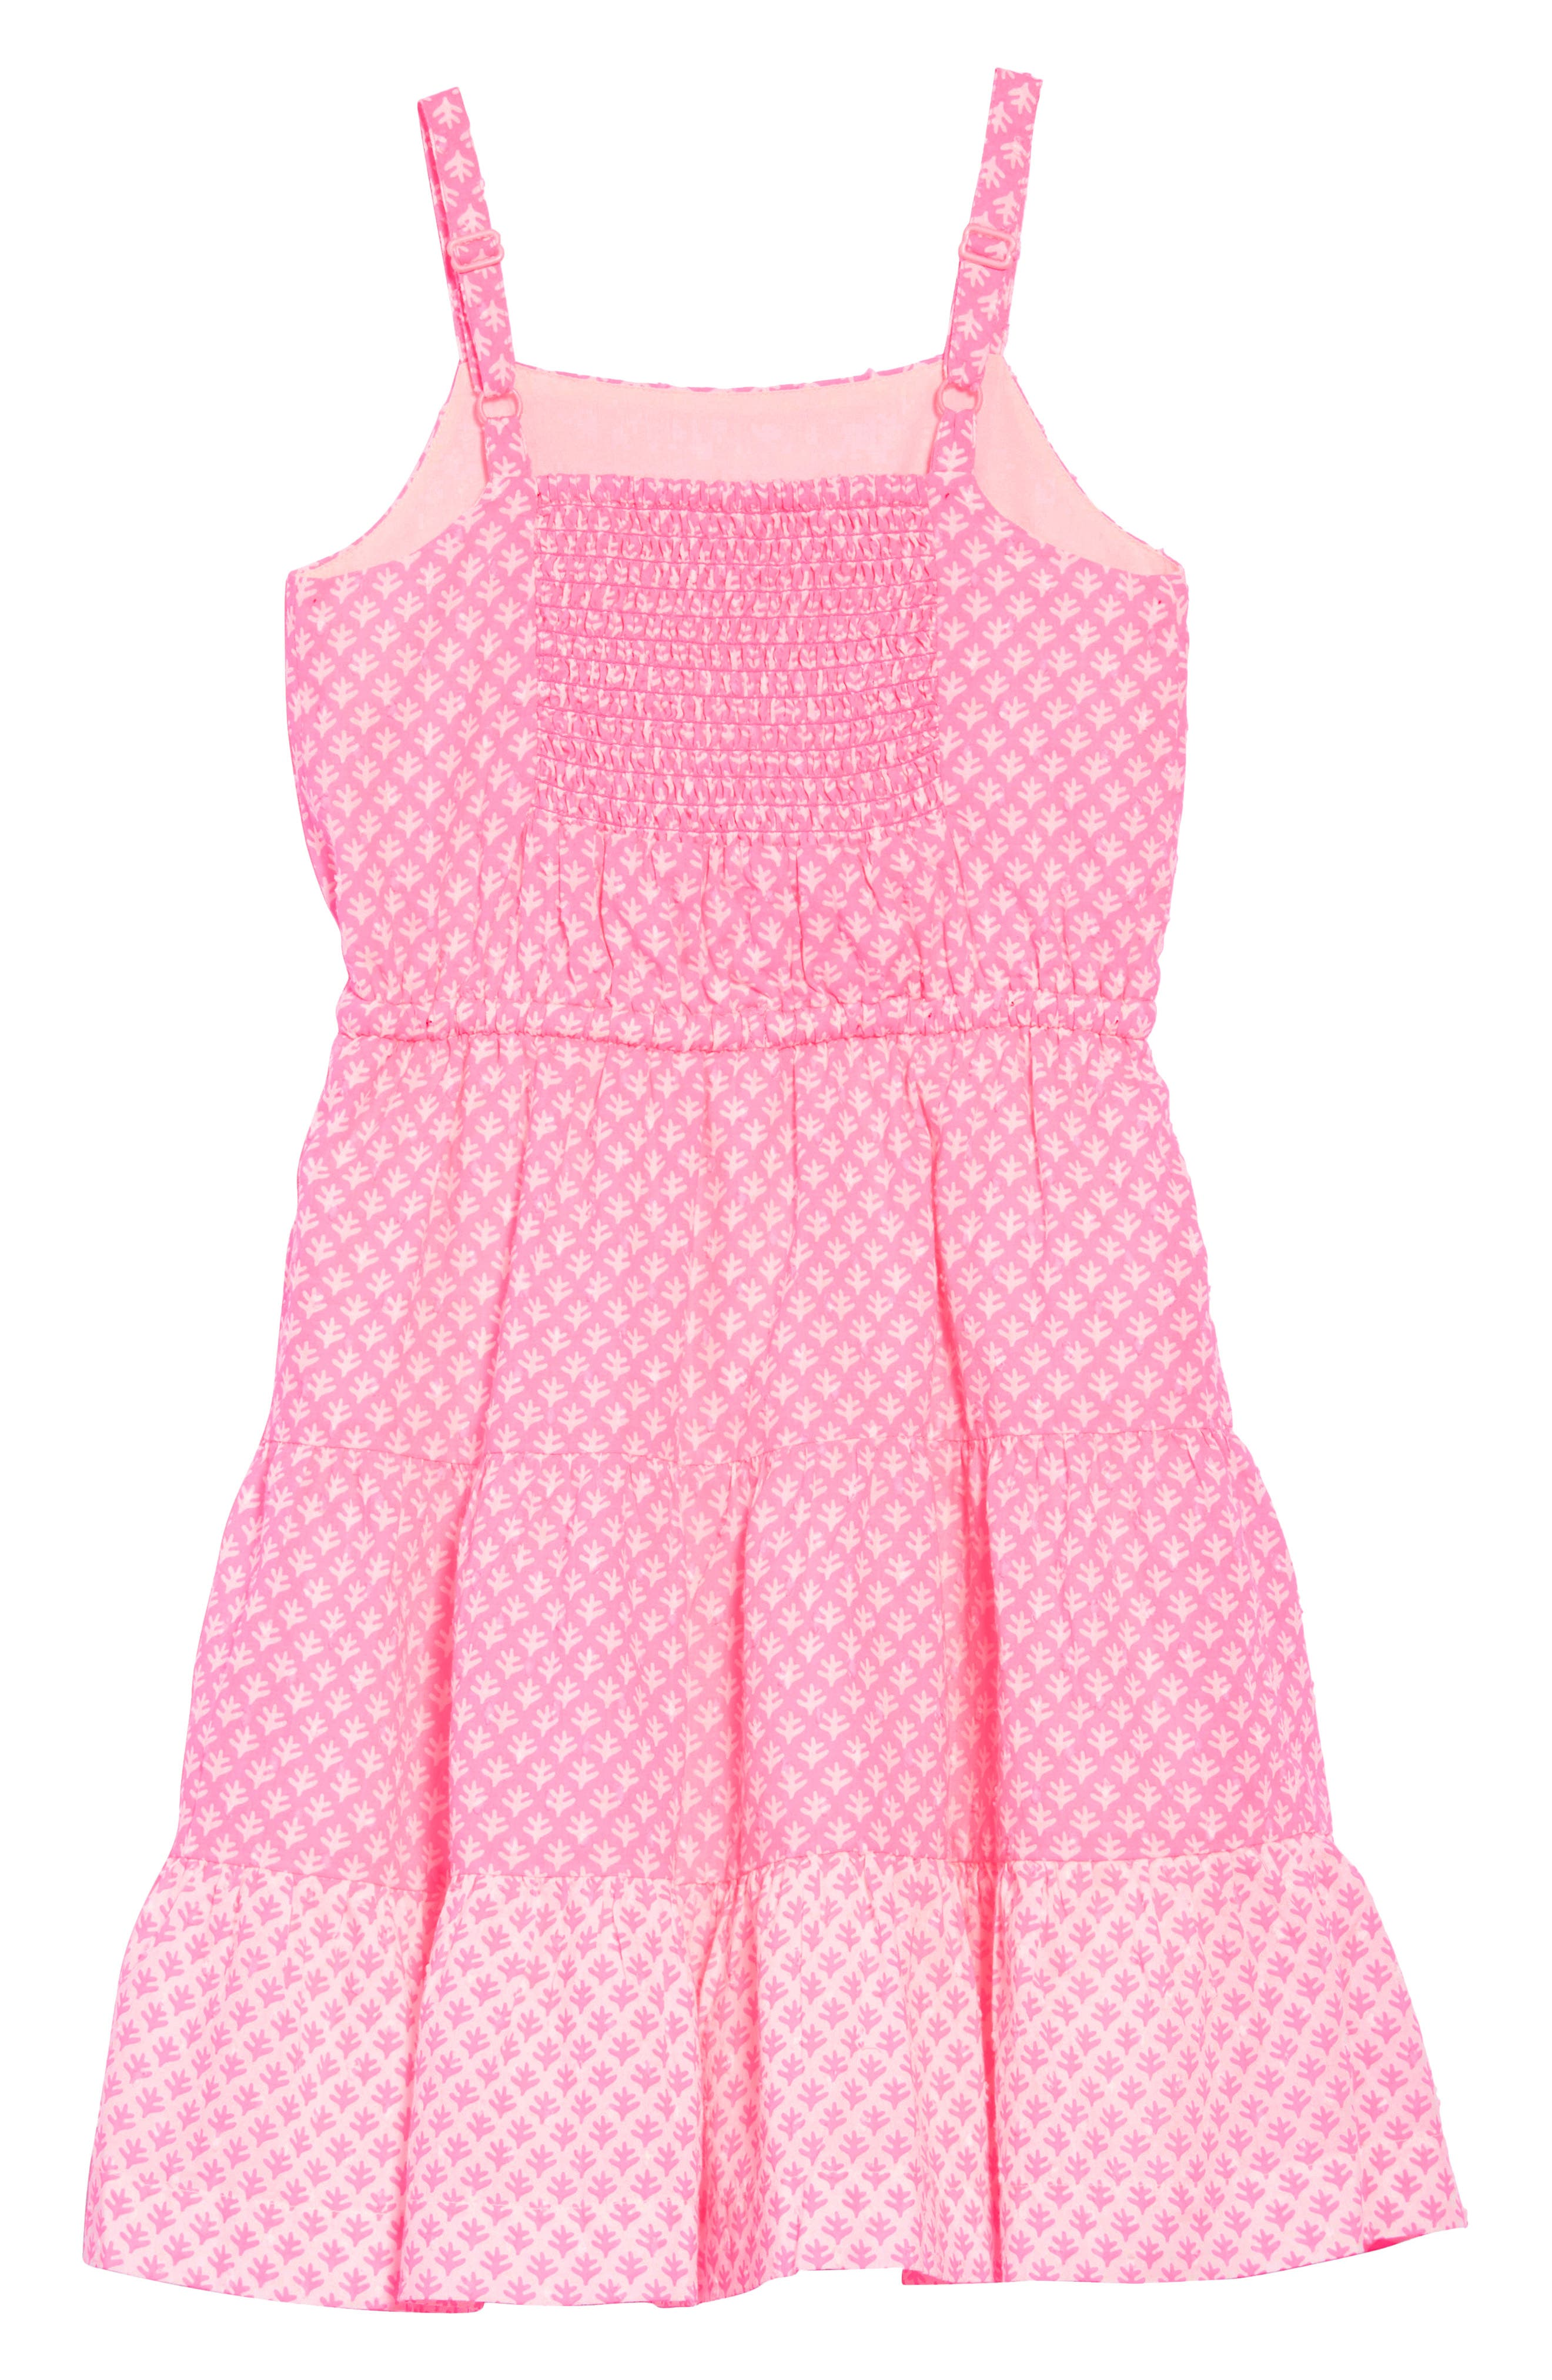 Tiered Strappy Woven Dress,                             Alternate thumbnail 2, color,                             664